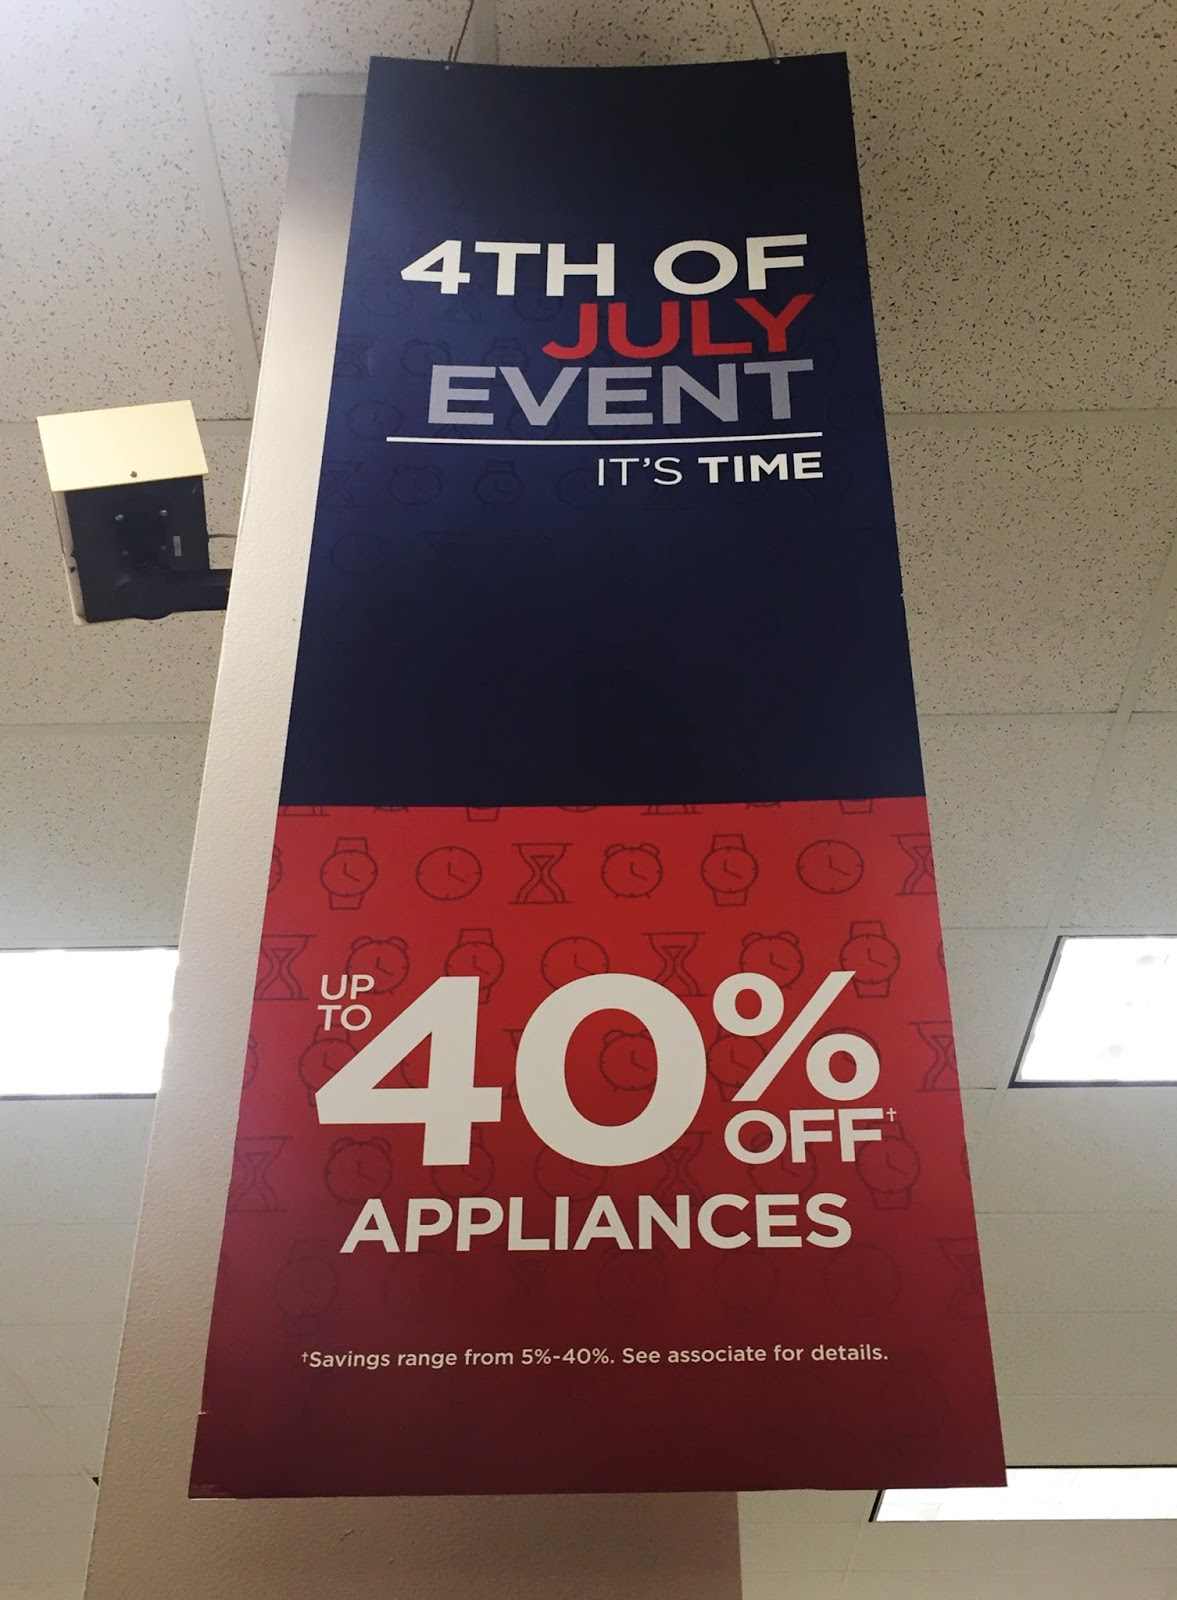 Cool Sears is among the leading appliance retailers and America us fitness equipment retailer Sears is America us provider of appliance and product repair